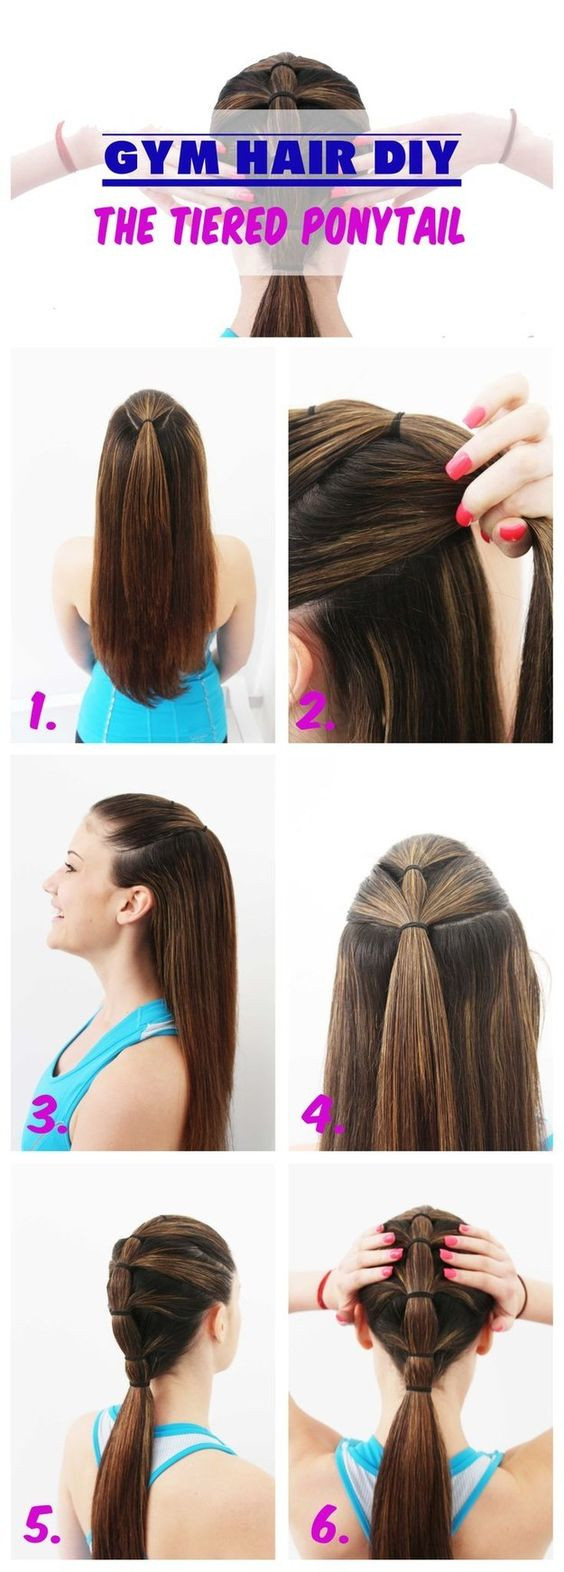 Best ideas about Quick And Easy Hairstyle For School . Save or Pin 22 Quick and Easy Back to School Hairstyle Tutorials Now.